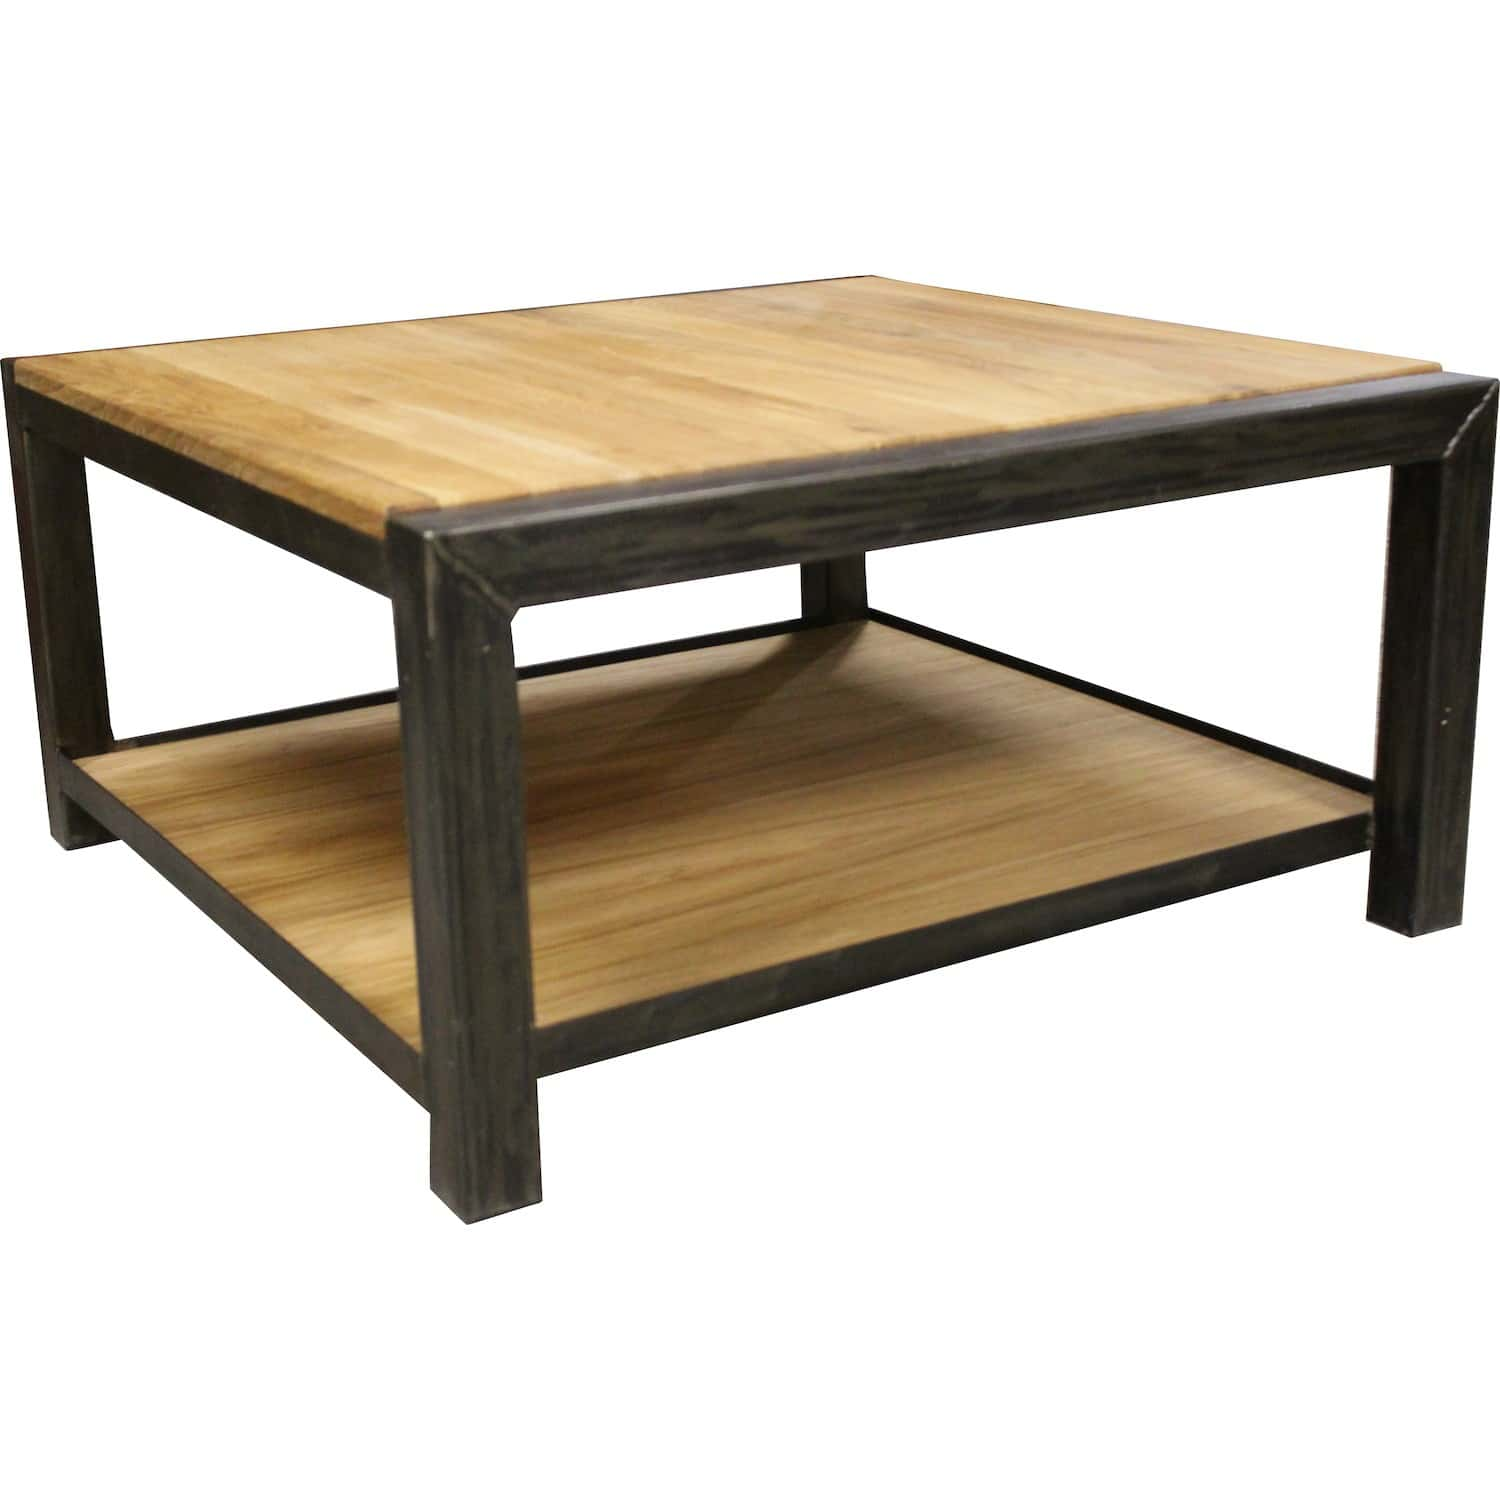 Table basse coffre doccasion for Table de television en bois